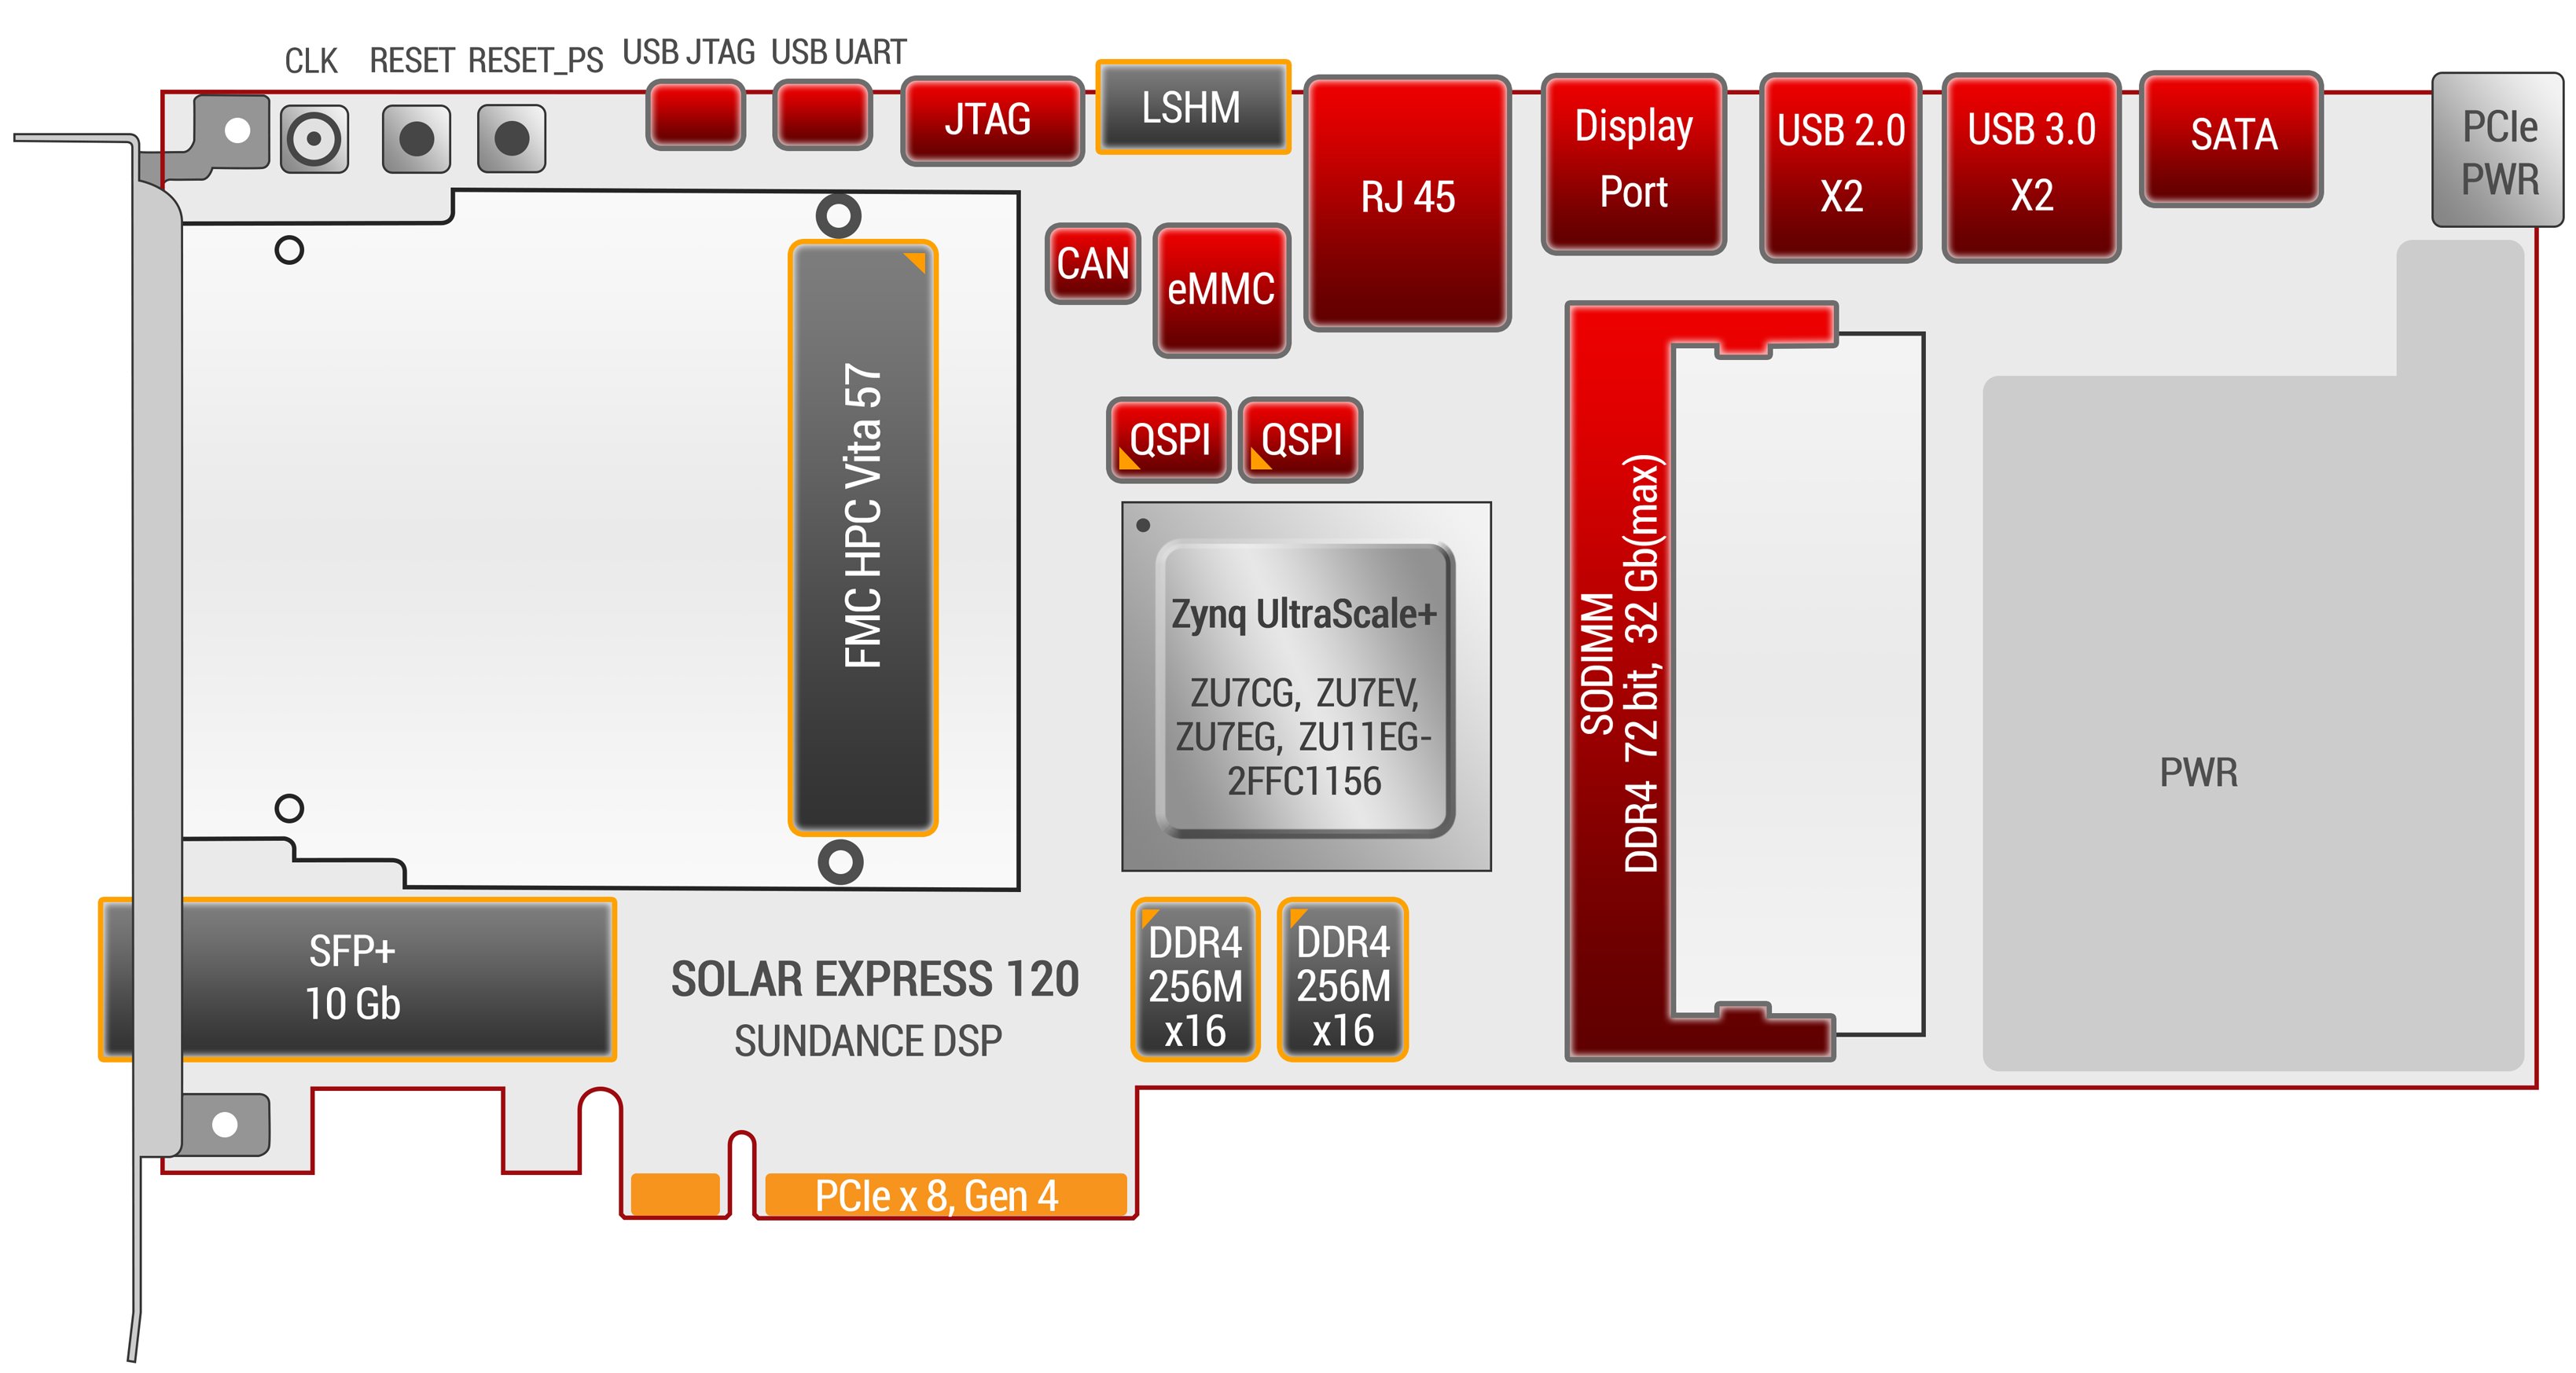 SE120 PCIe card with Zynq Ultrascale+ MPSOC from Xilinx and FMC site